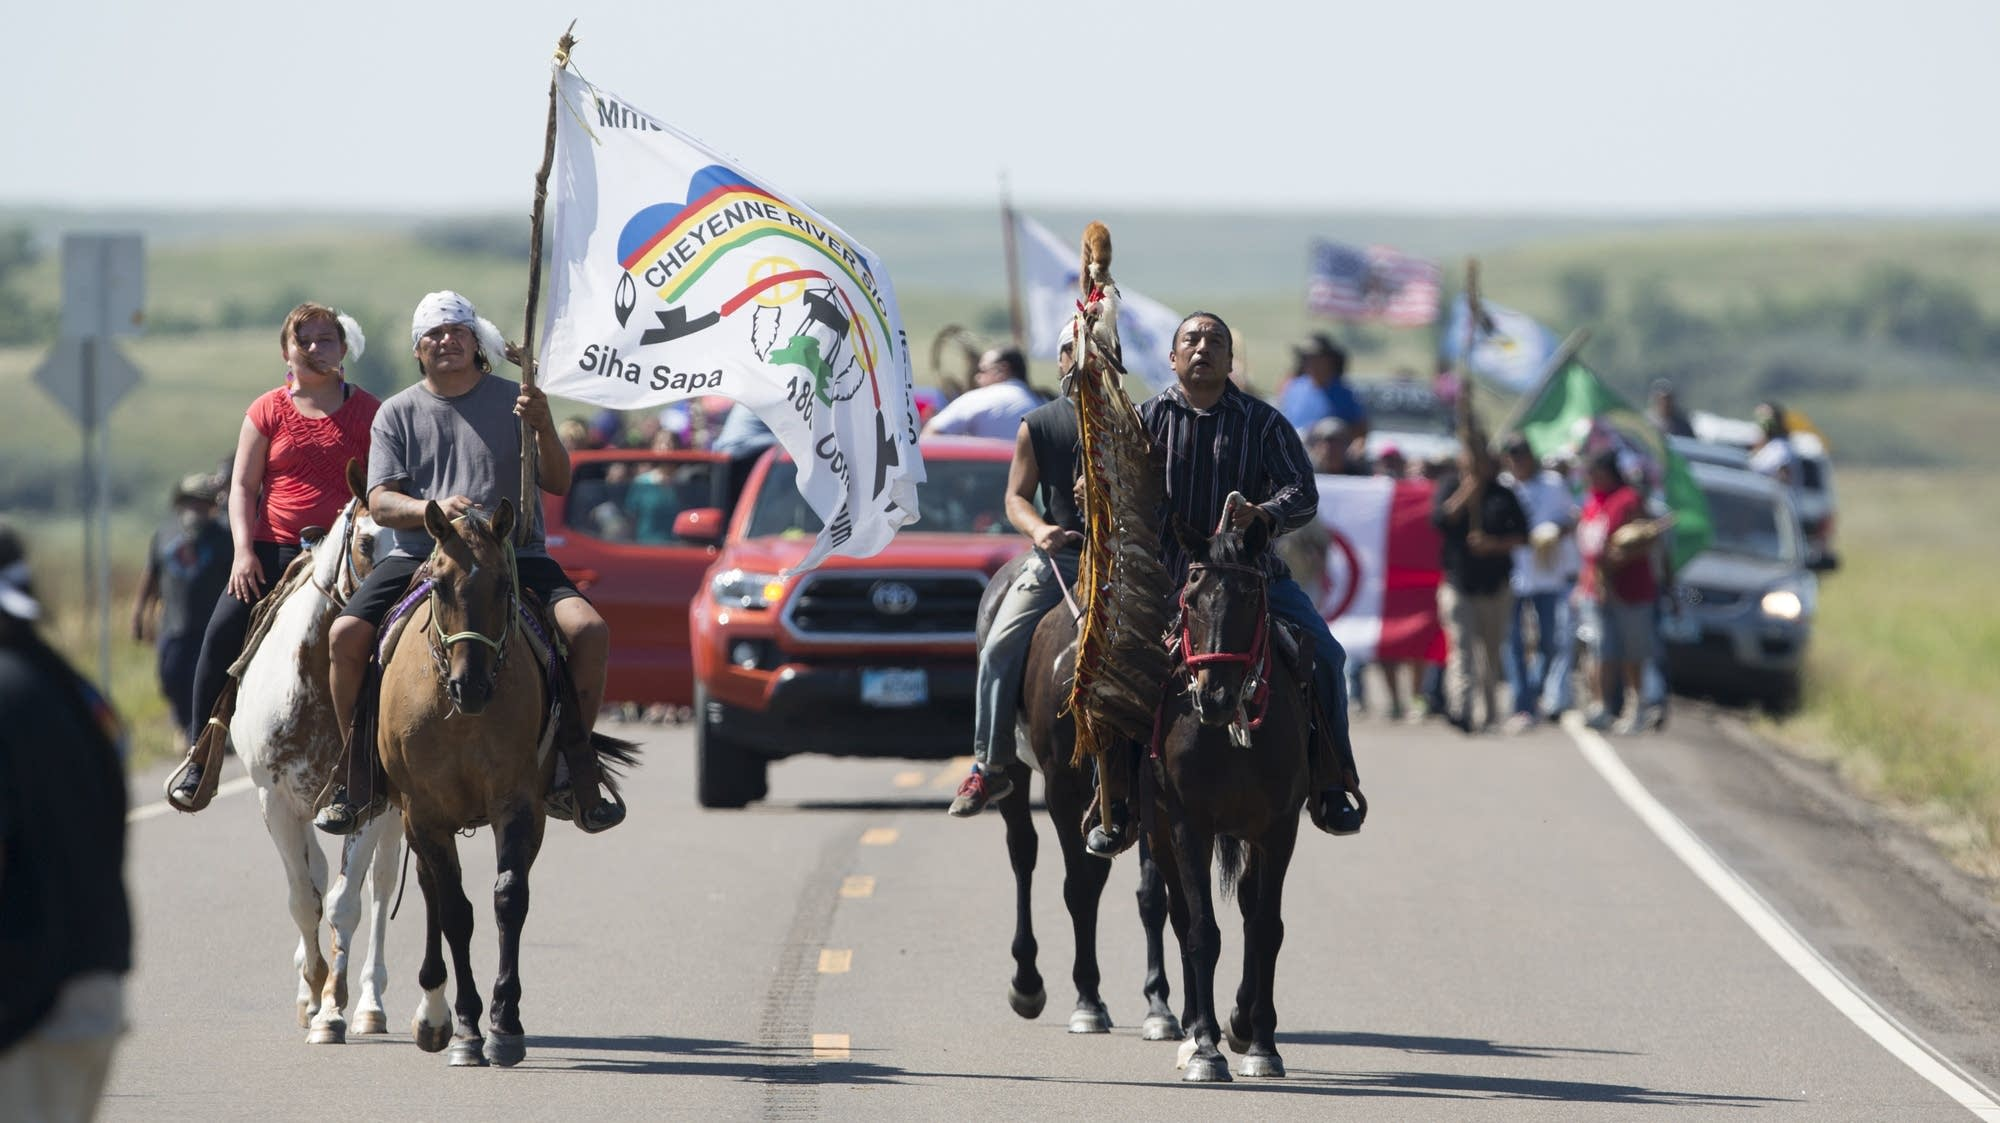 Protesters march and ride from the camp.